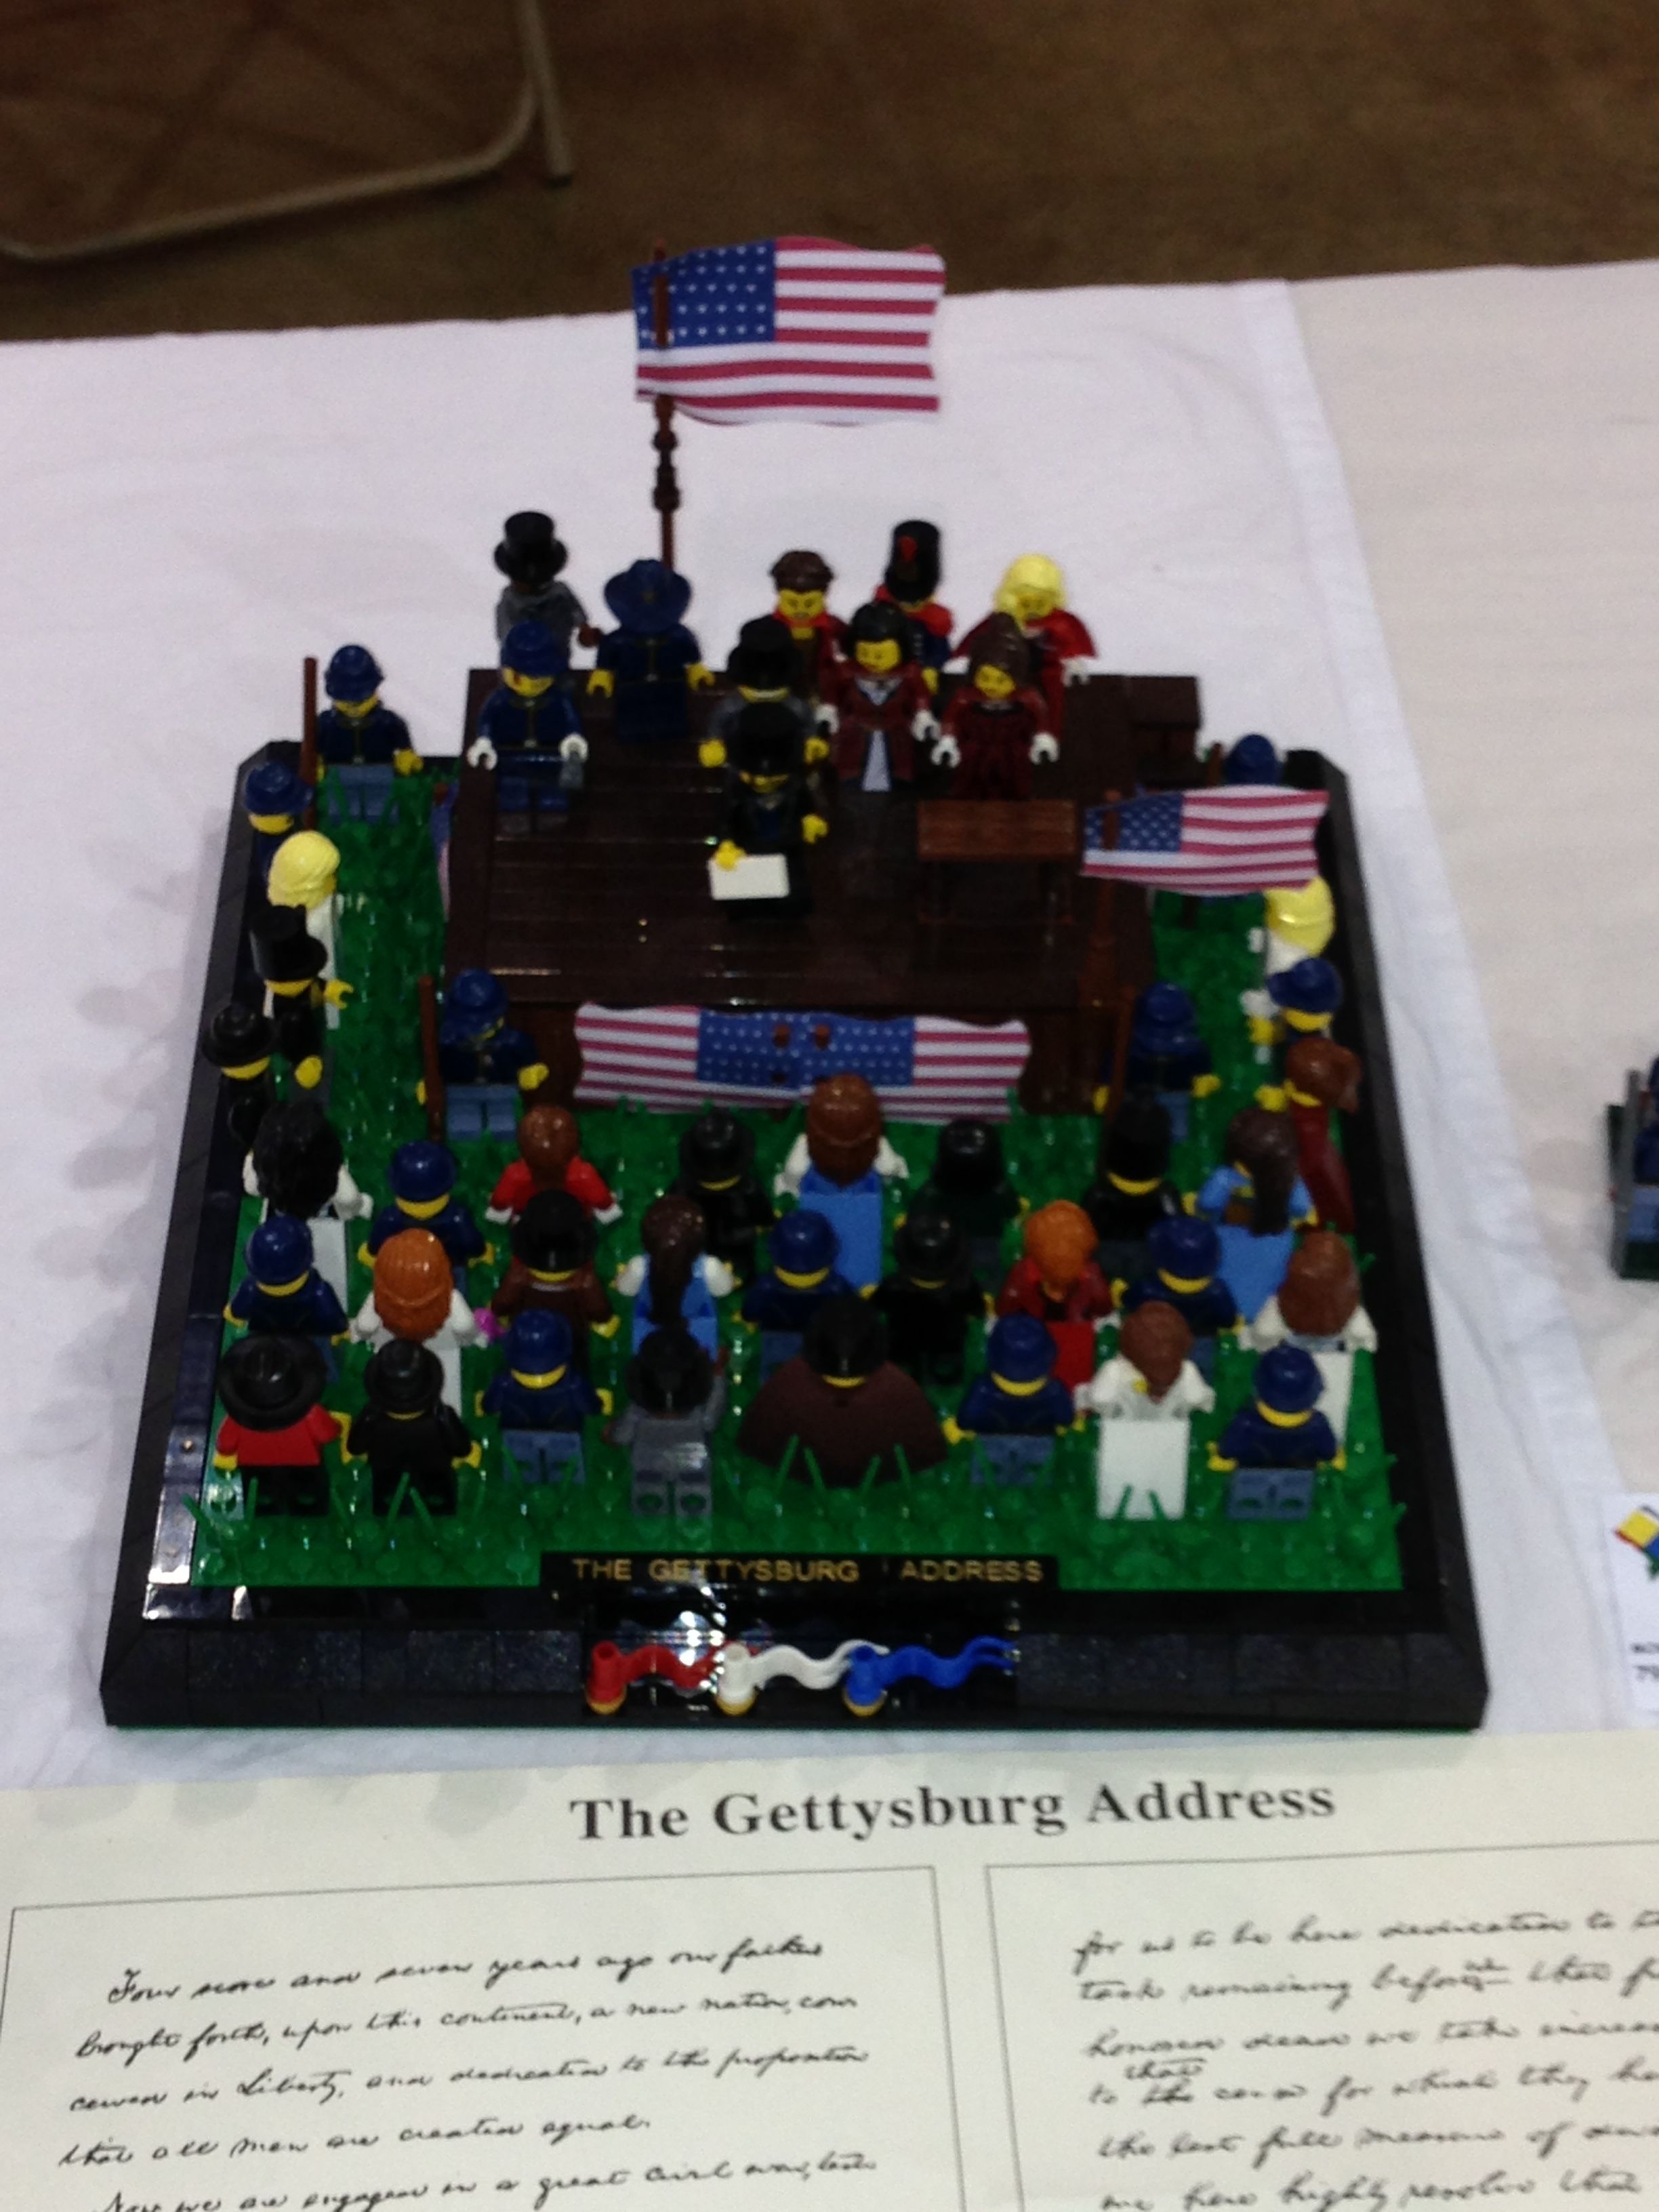 Lego Version Of The Gettysburg Address By Abraham Lincoln